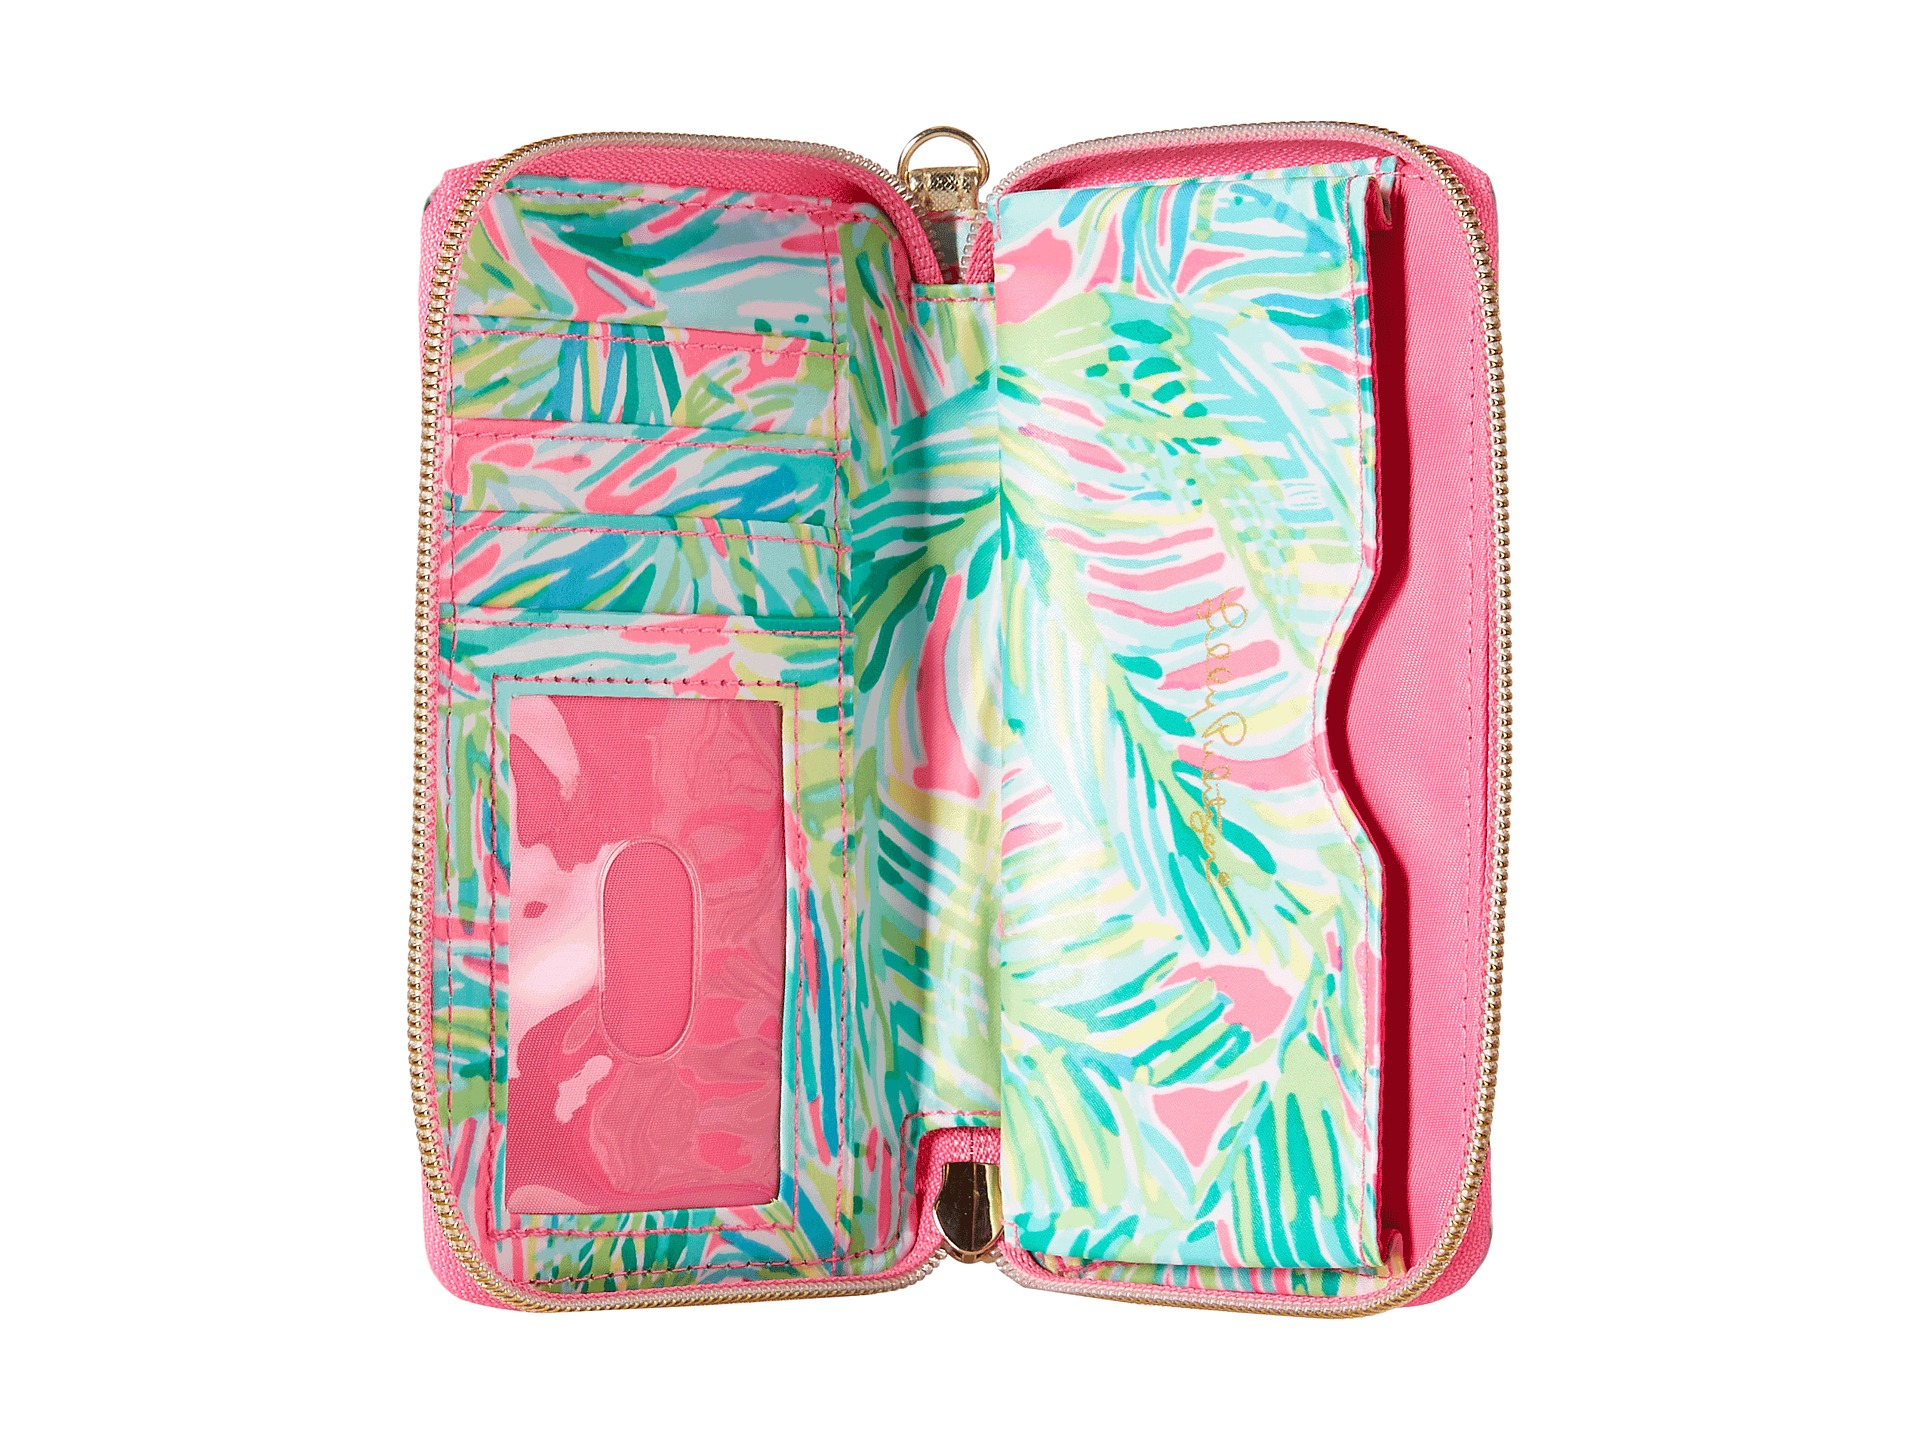 Lilly Pulitzer Phone Case | Lilly Pulitzer Case | Phone Case Spigen